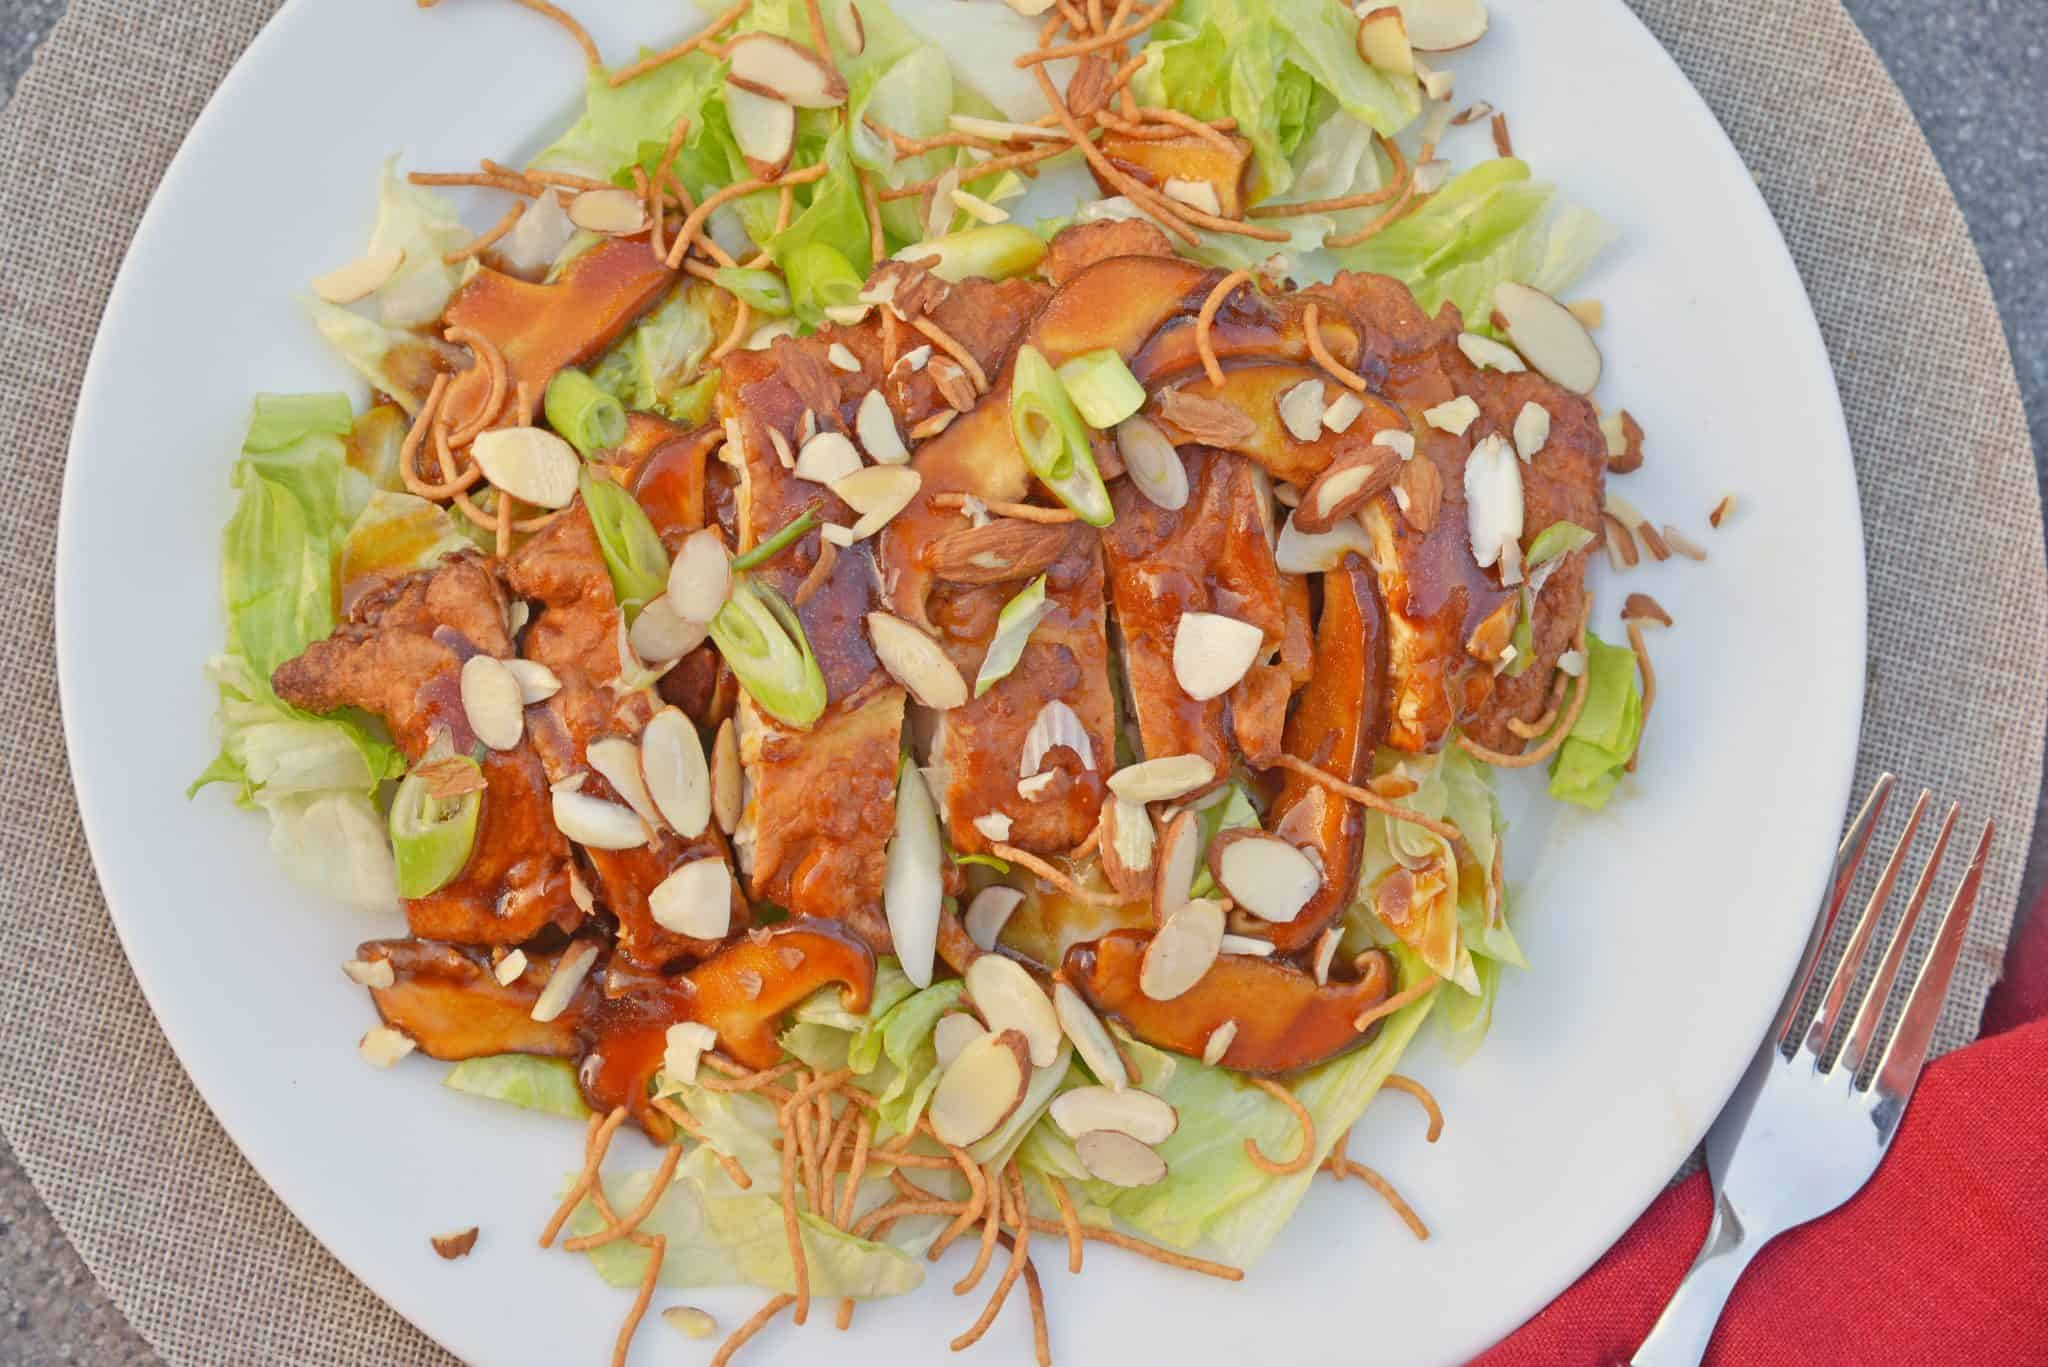 Chinese Almond Chicken, aka Detroit Almond Chicken, ABC Chicken or Almond Boneless Chicken, is a dish with fried chicken and mushroom gravy served over iceberg lettuce. #almondchicken #almondbonelesschicken www.savoryexperiments.com